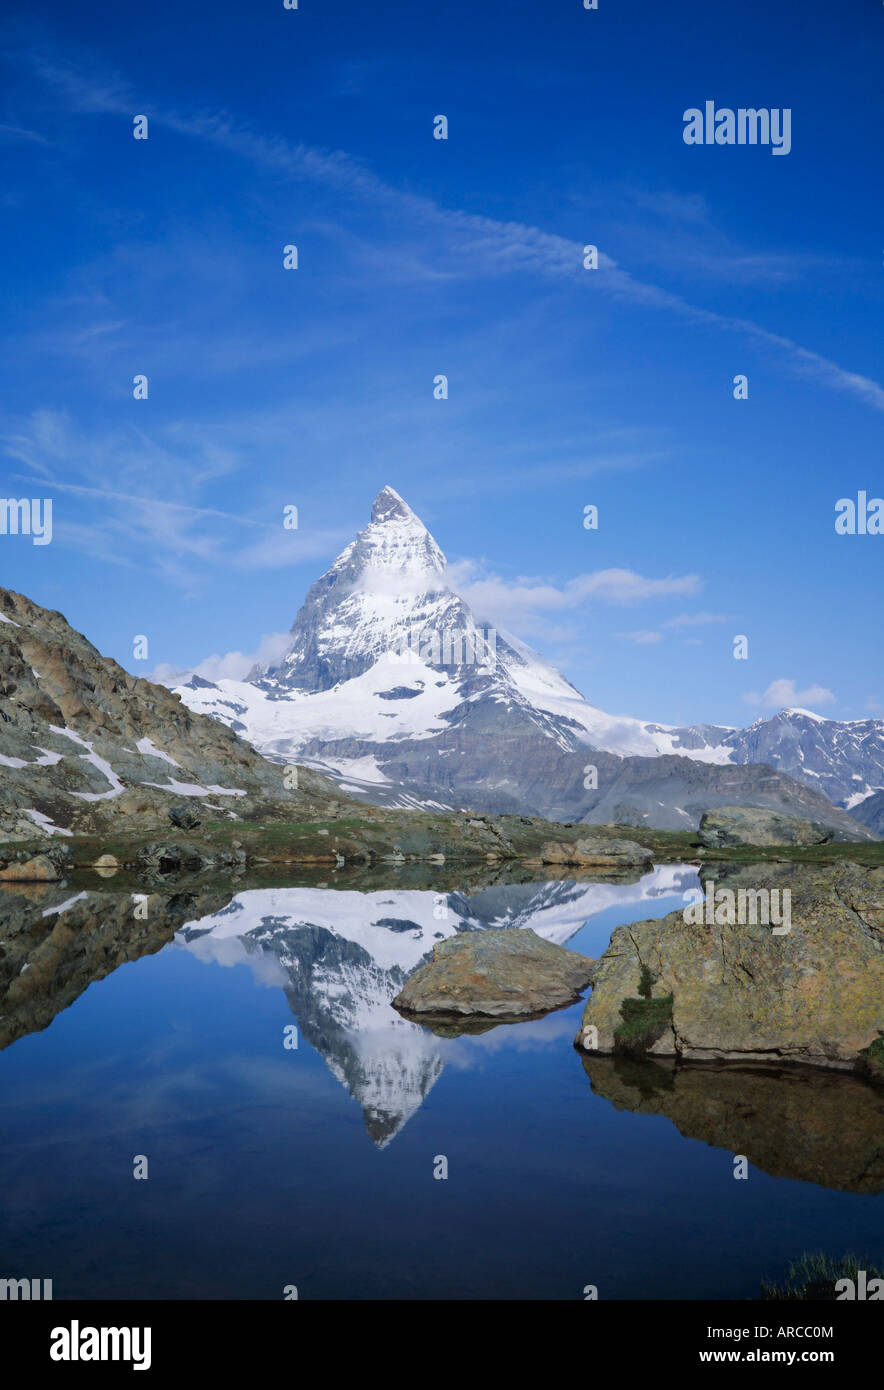 The Matterhorn mountain, Valais (Wallis), Swiss Alps, Switzerland, Europe - Stock Image